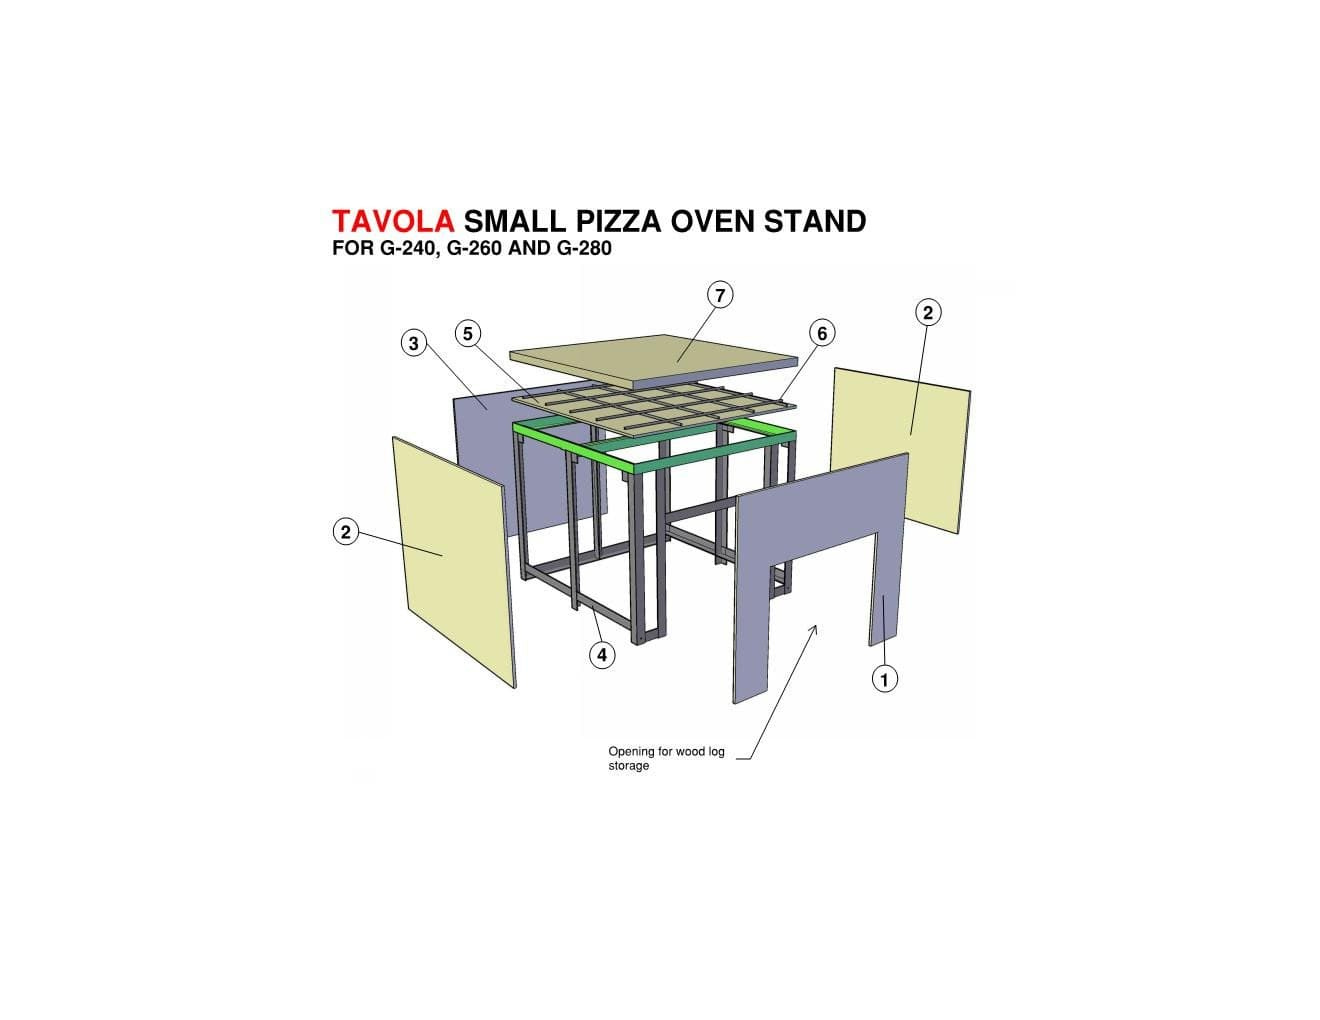 TAVOLA SMALL PIZZA OVEN STAND FOR G-240, G-260 AND G-280